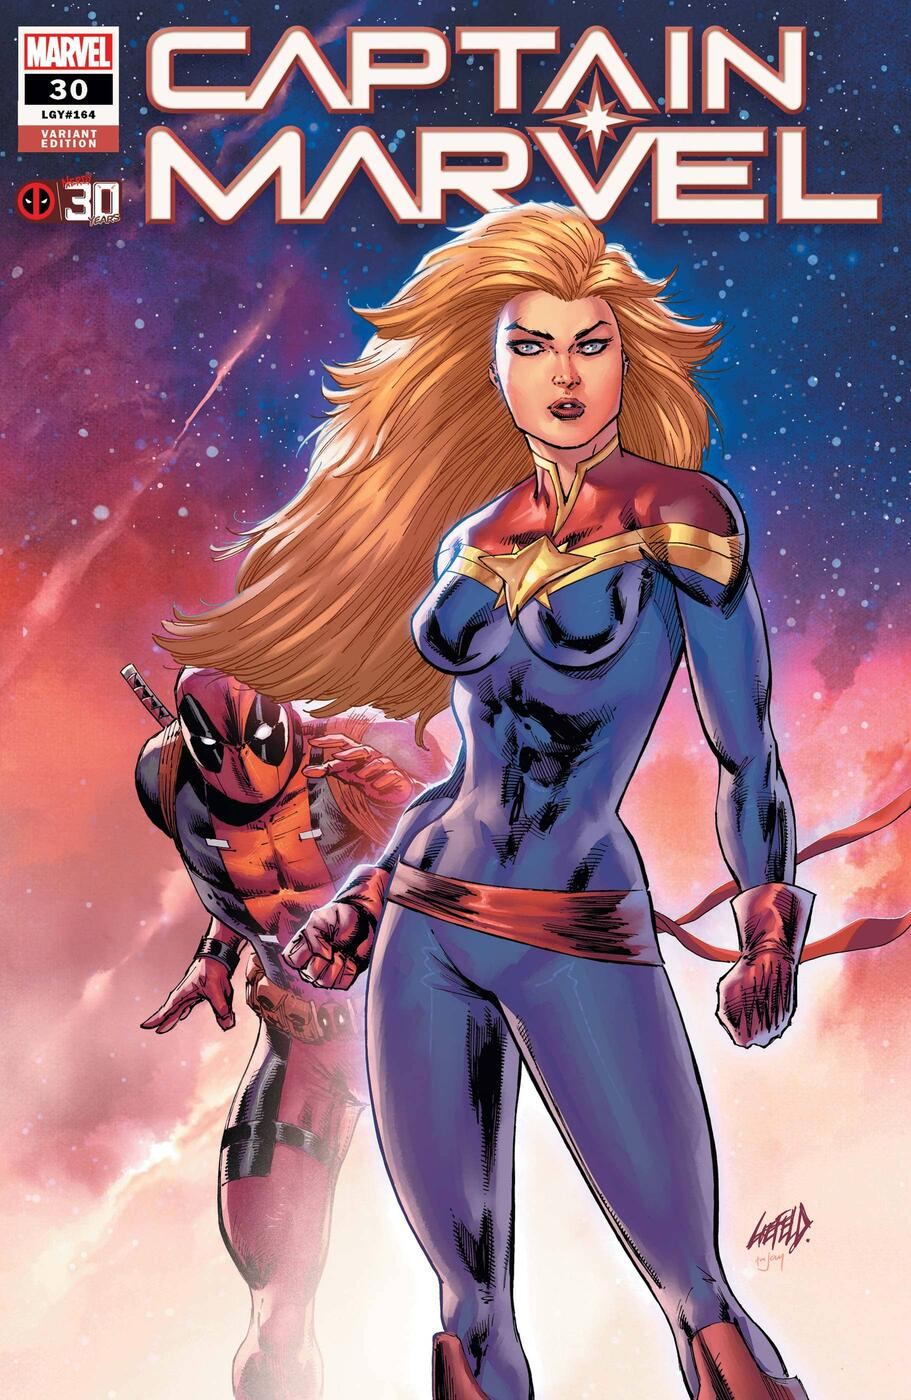 CAPTAIN MARVEL #30 variant cover by Rob Liefeld